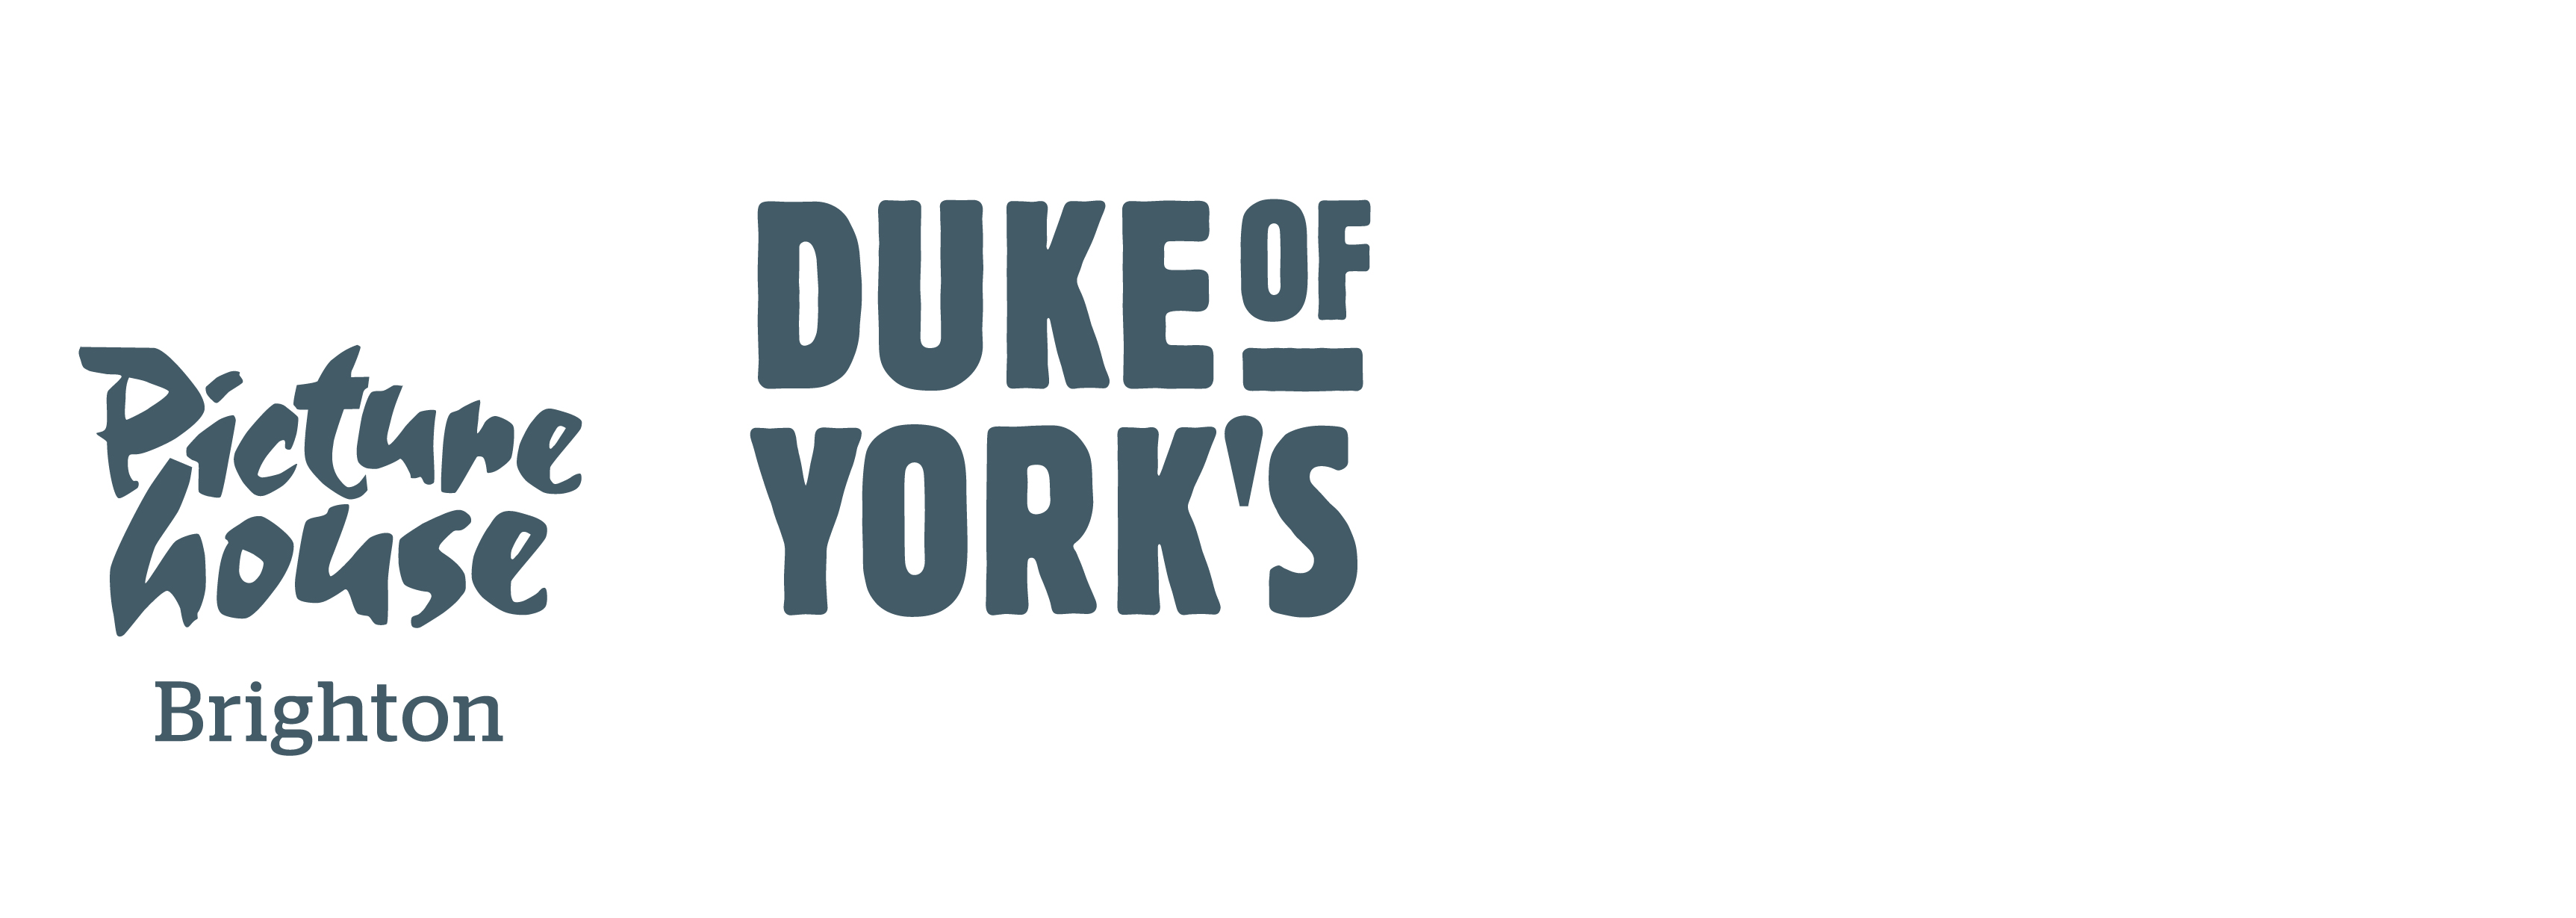 Duke of Yorks logo